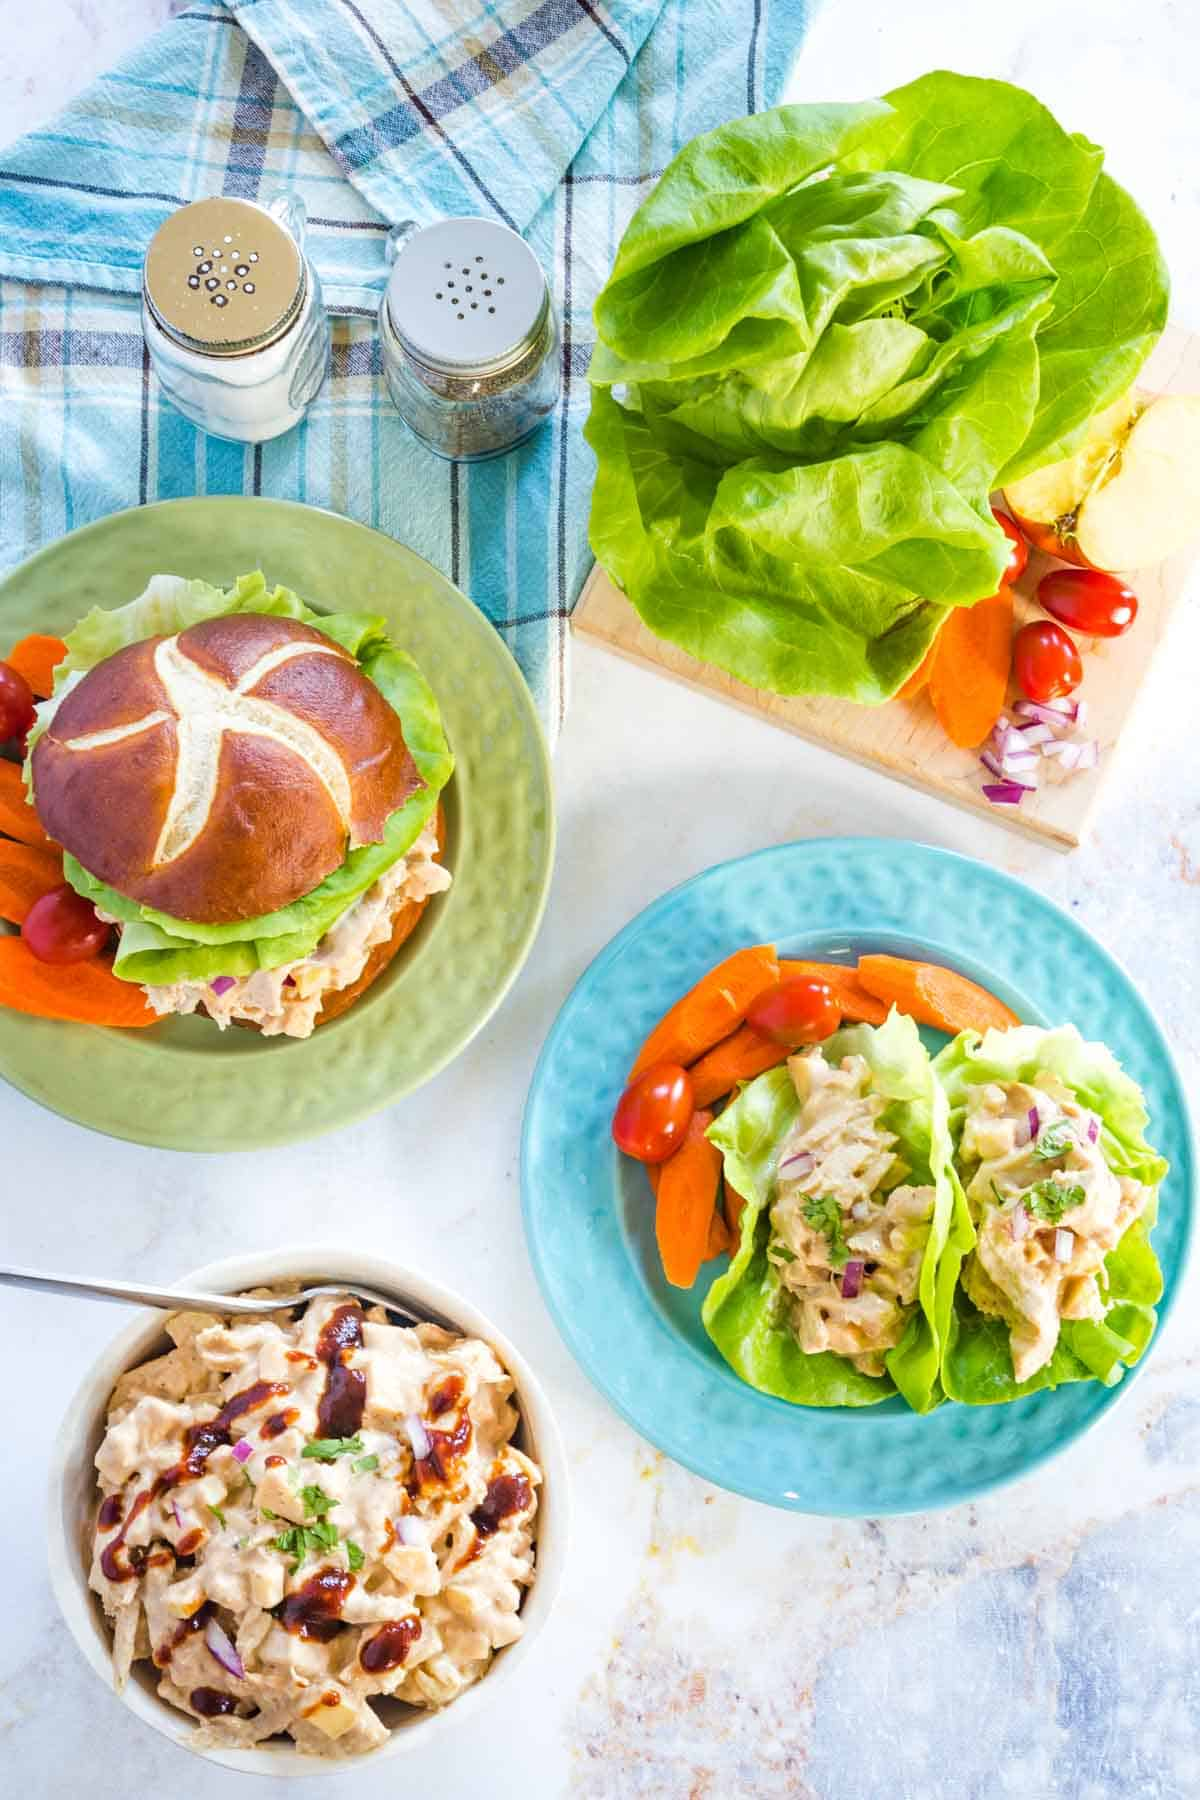 bbe chicken salad sandwich and lettuce wraps on plate with a bowl filled with more of the barbecue chicken salad, plus lettuce on a cutting board